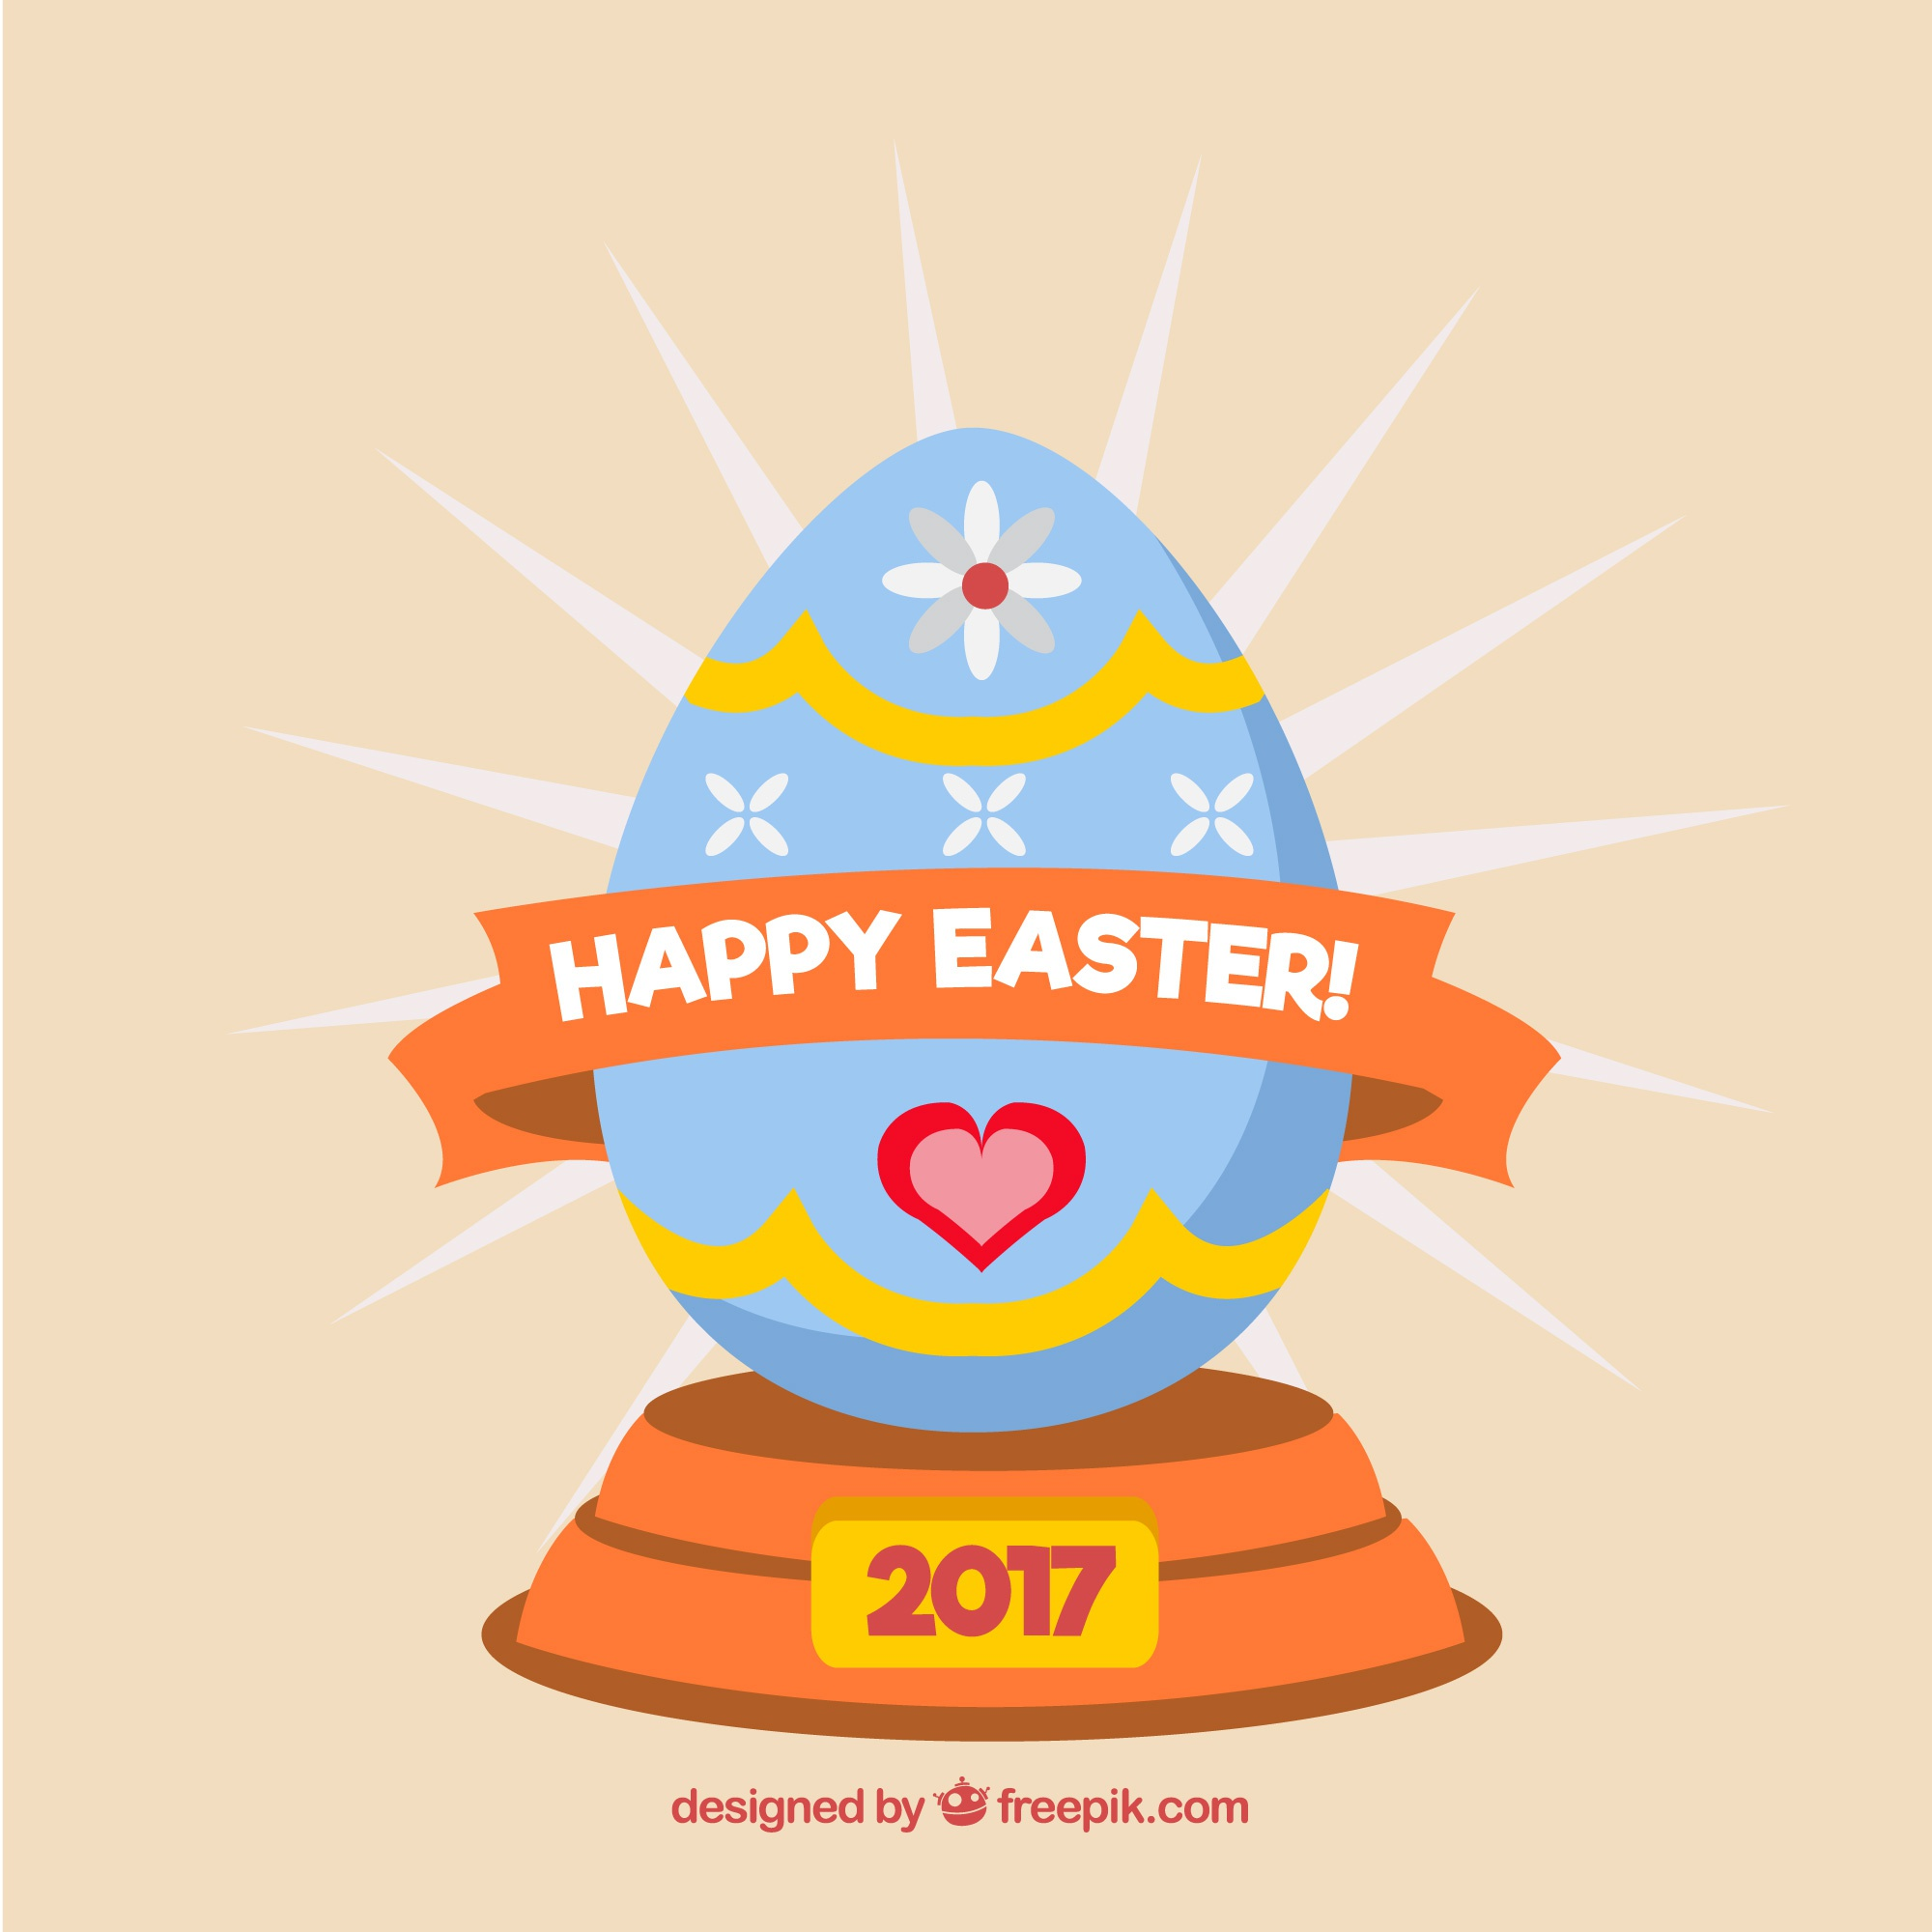 Happy easter background 2017 with decorative egg